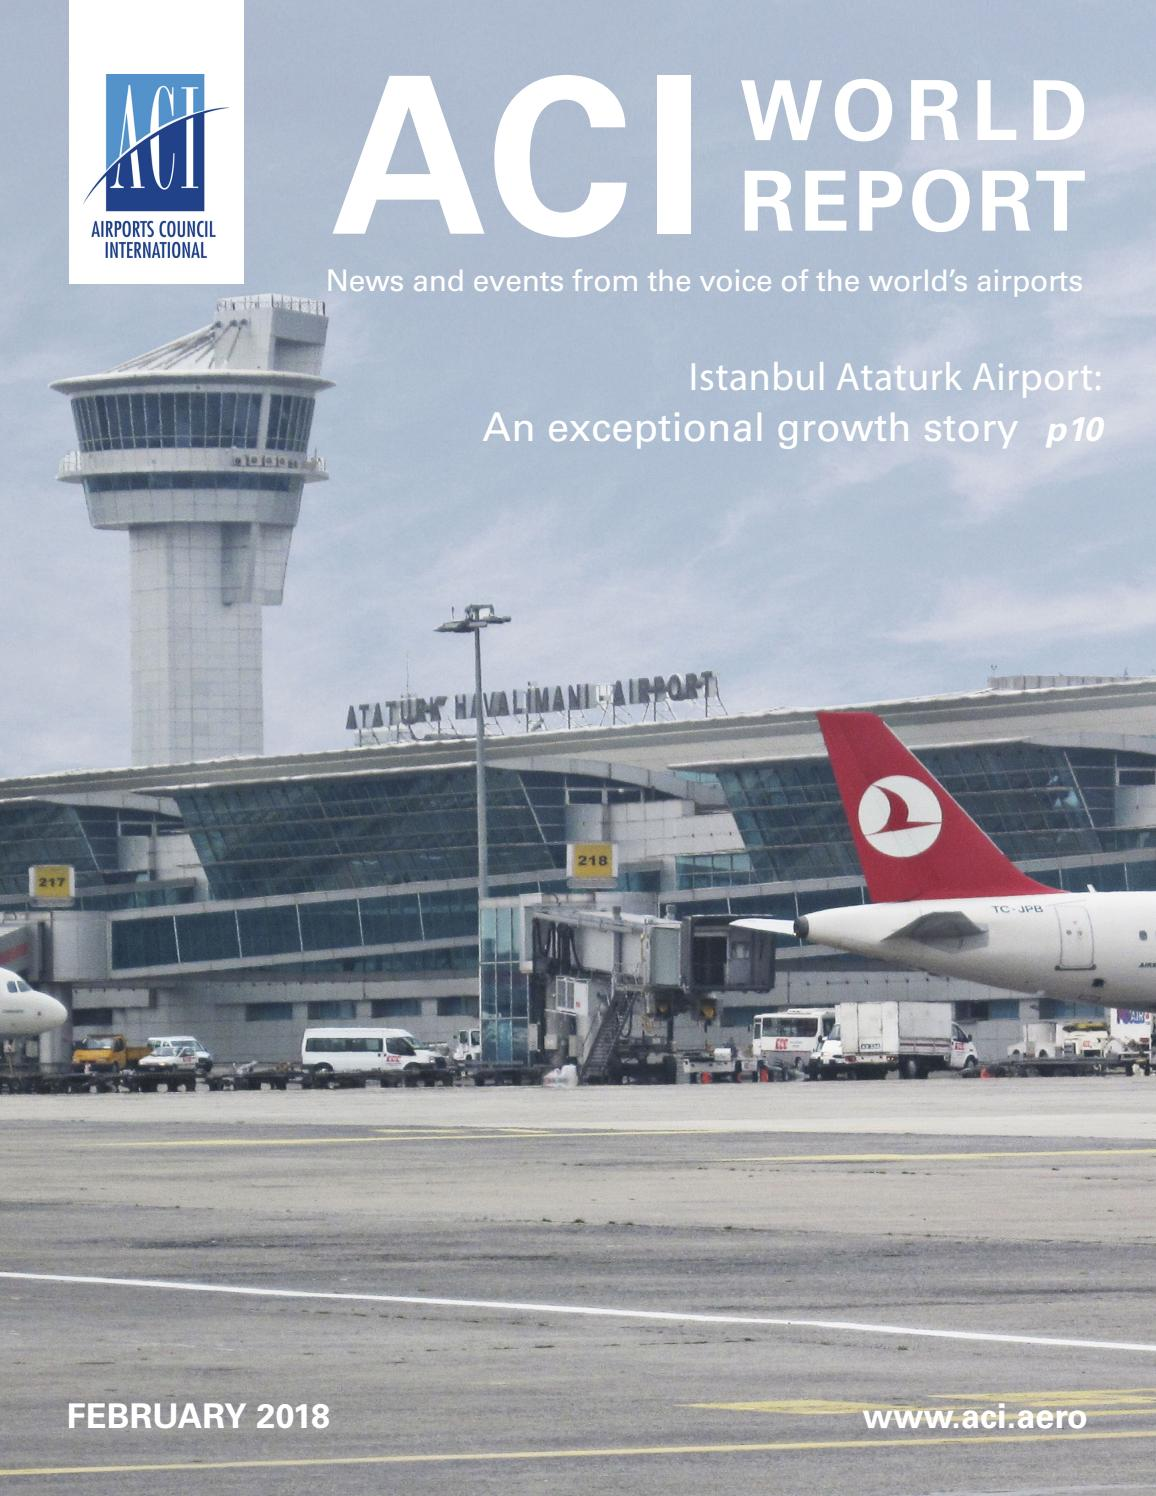 ACI World Report - February 2018 by Airports Council International - issuu